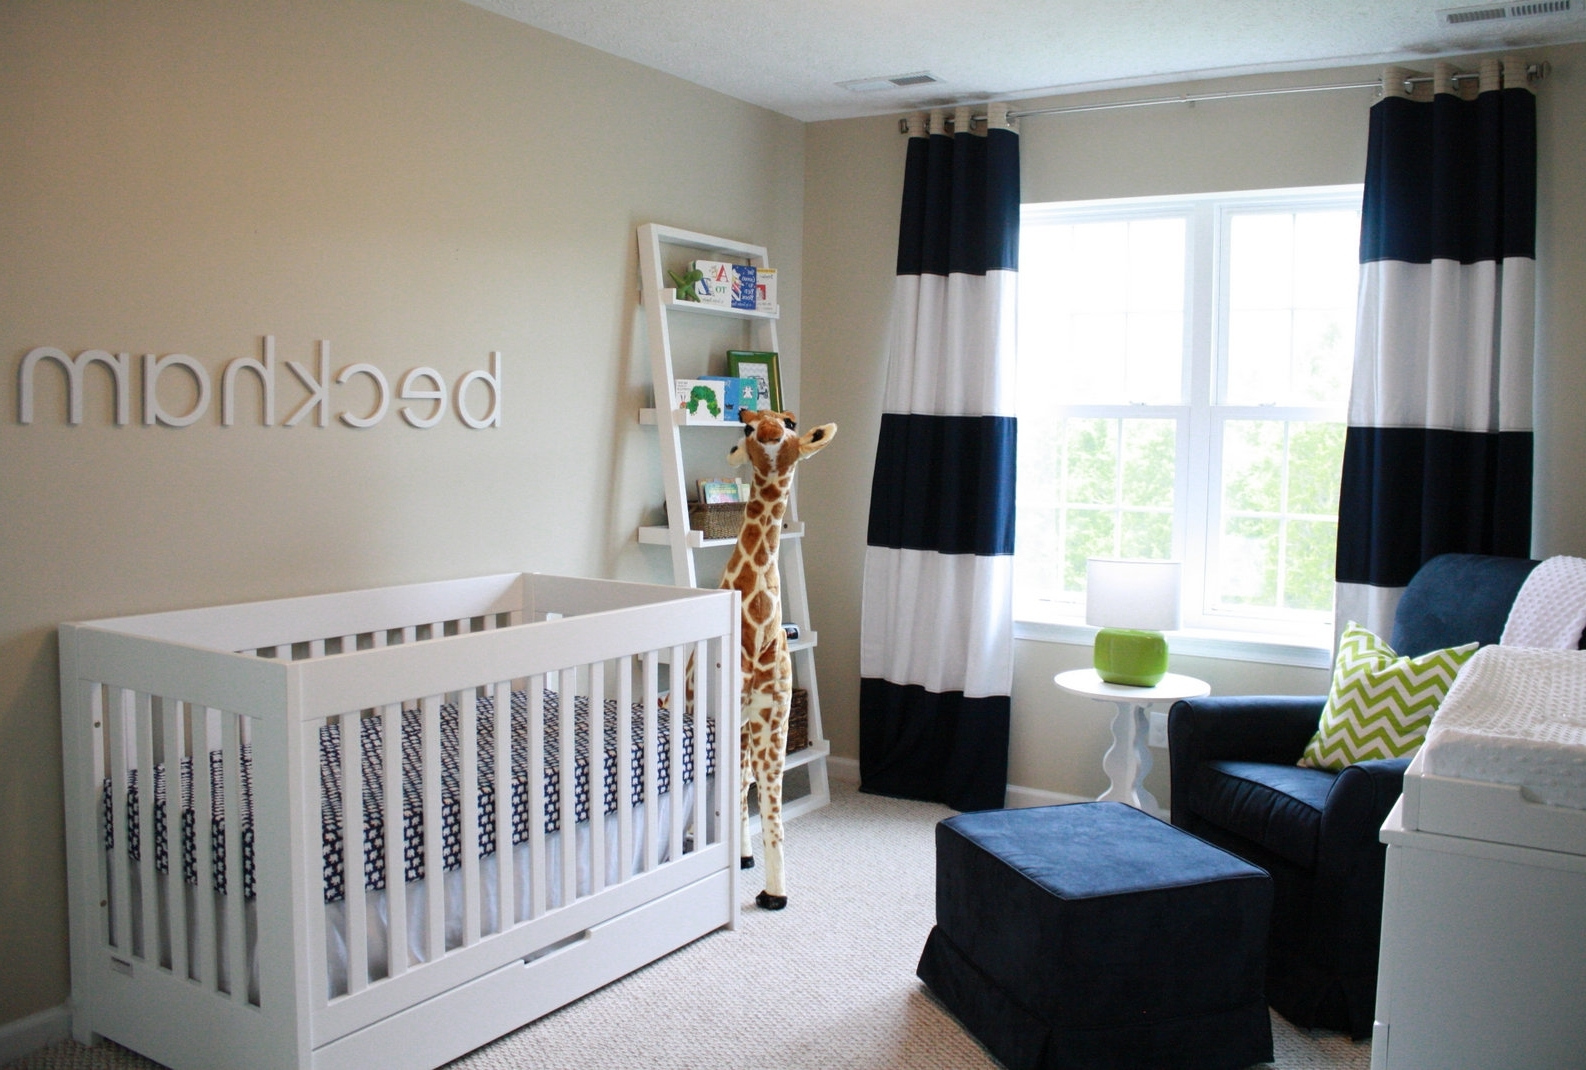 Gorgeous interior design ideas for baby rooms mojidelano com - Baby nursey ideas ...